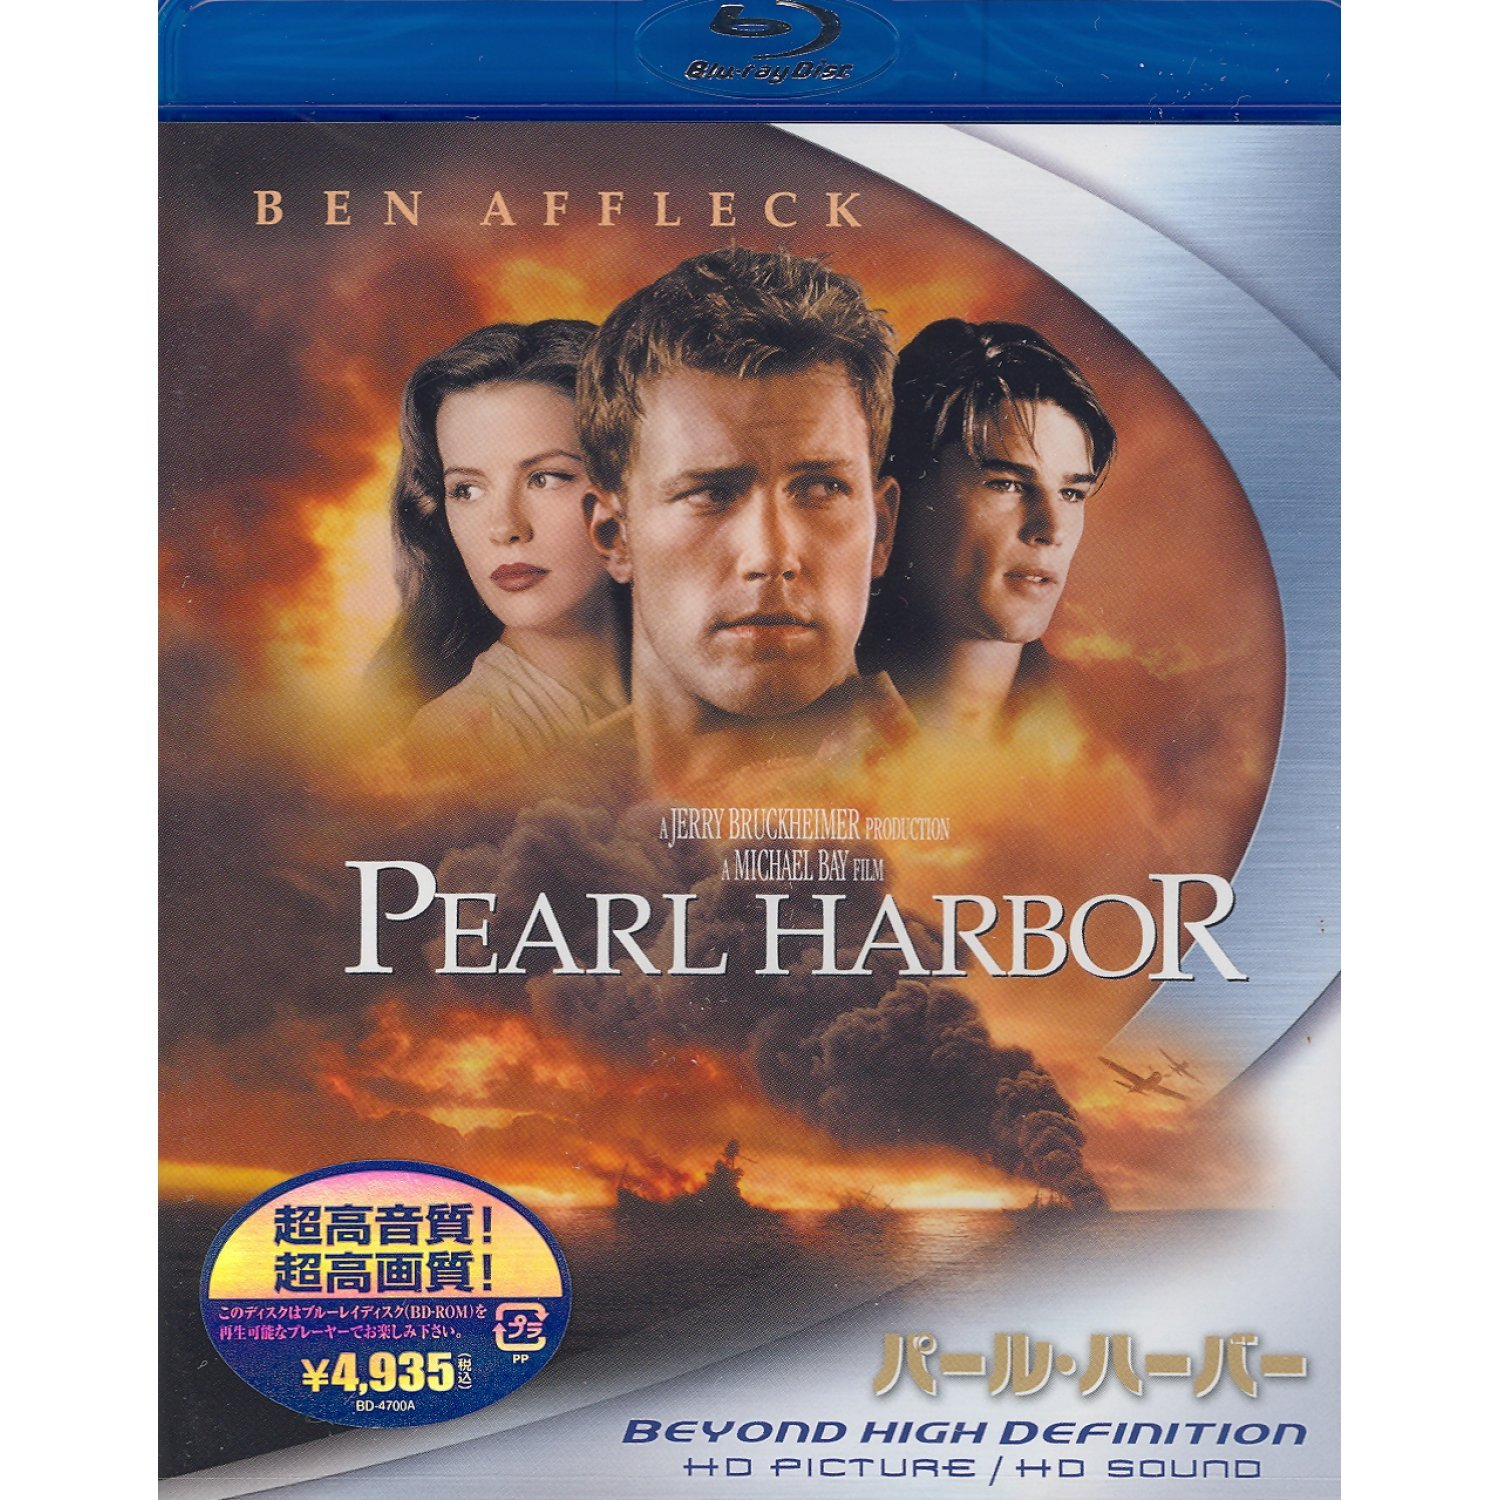 pearl harbor black singles A thinly detailed tale of heroism tantalized the nation in the months after the pearl harbor attack an unnamed negro messman was said to have shot down multiple japanese bombers while aboard a.